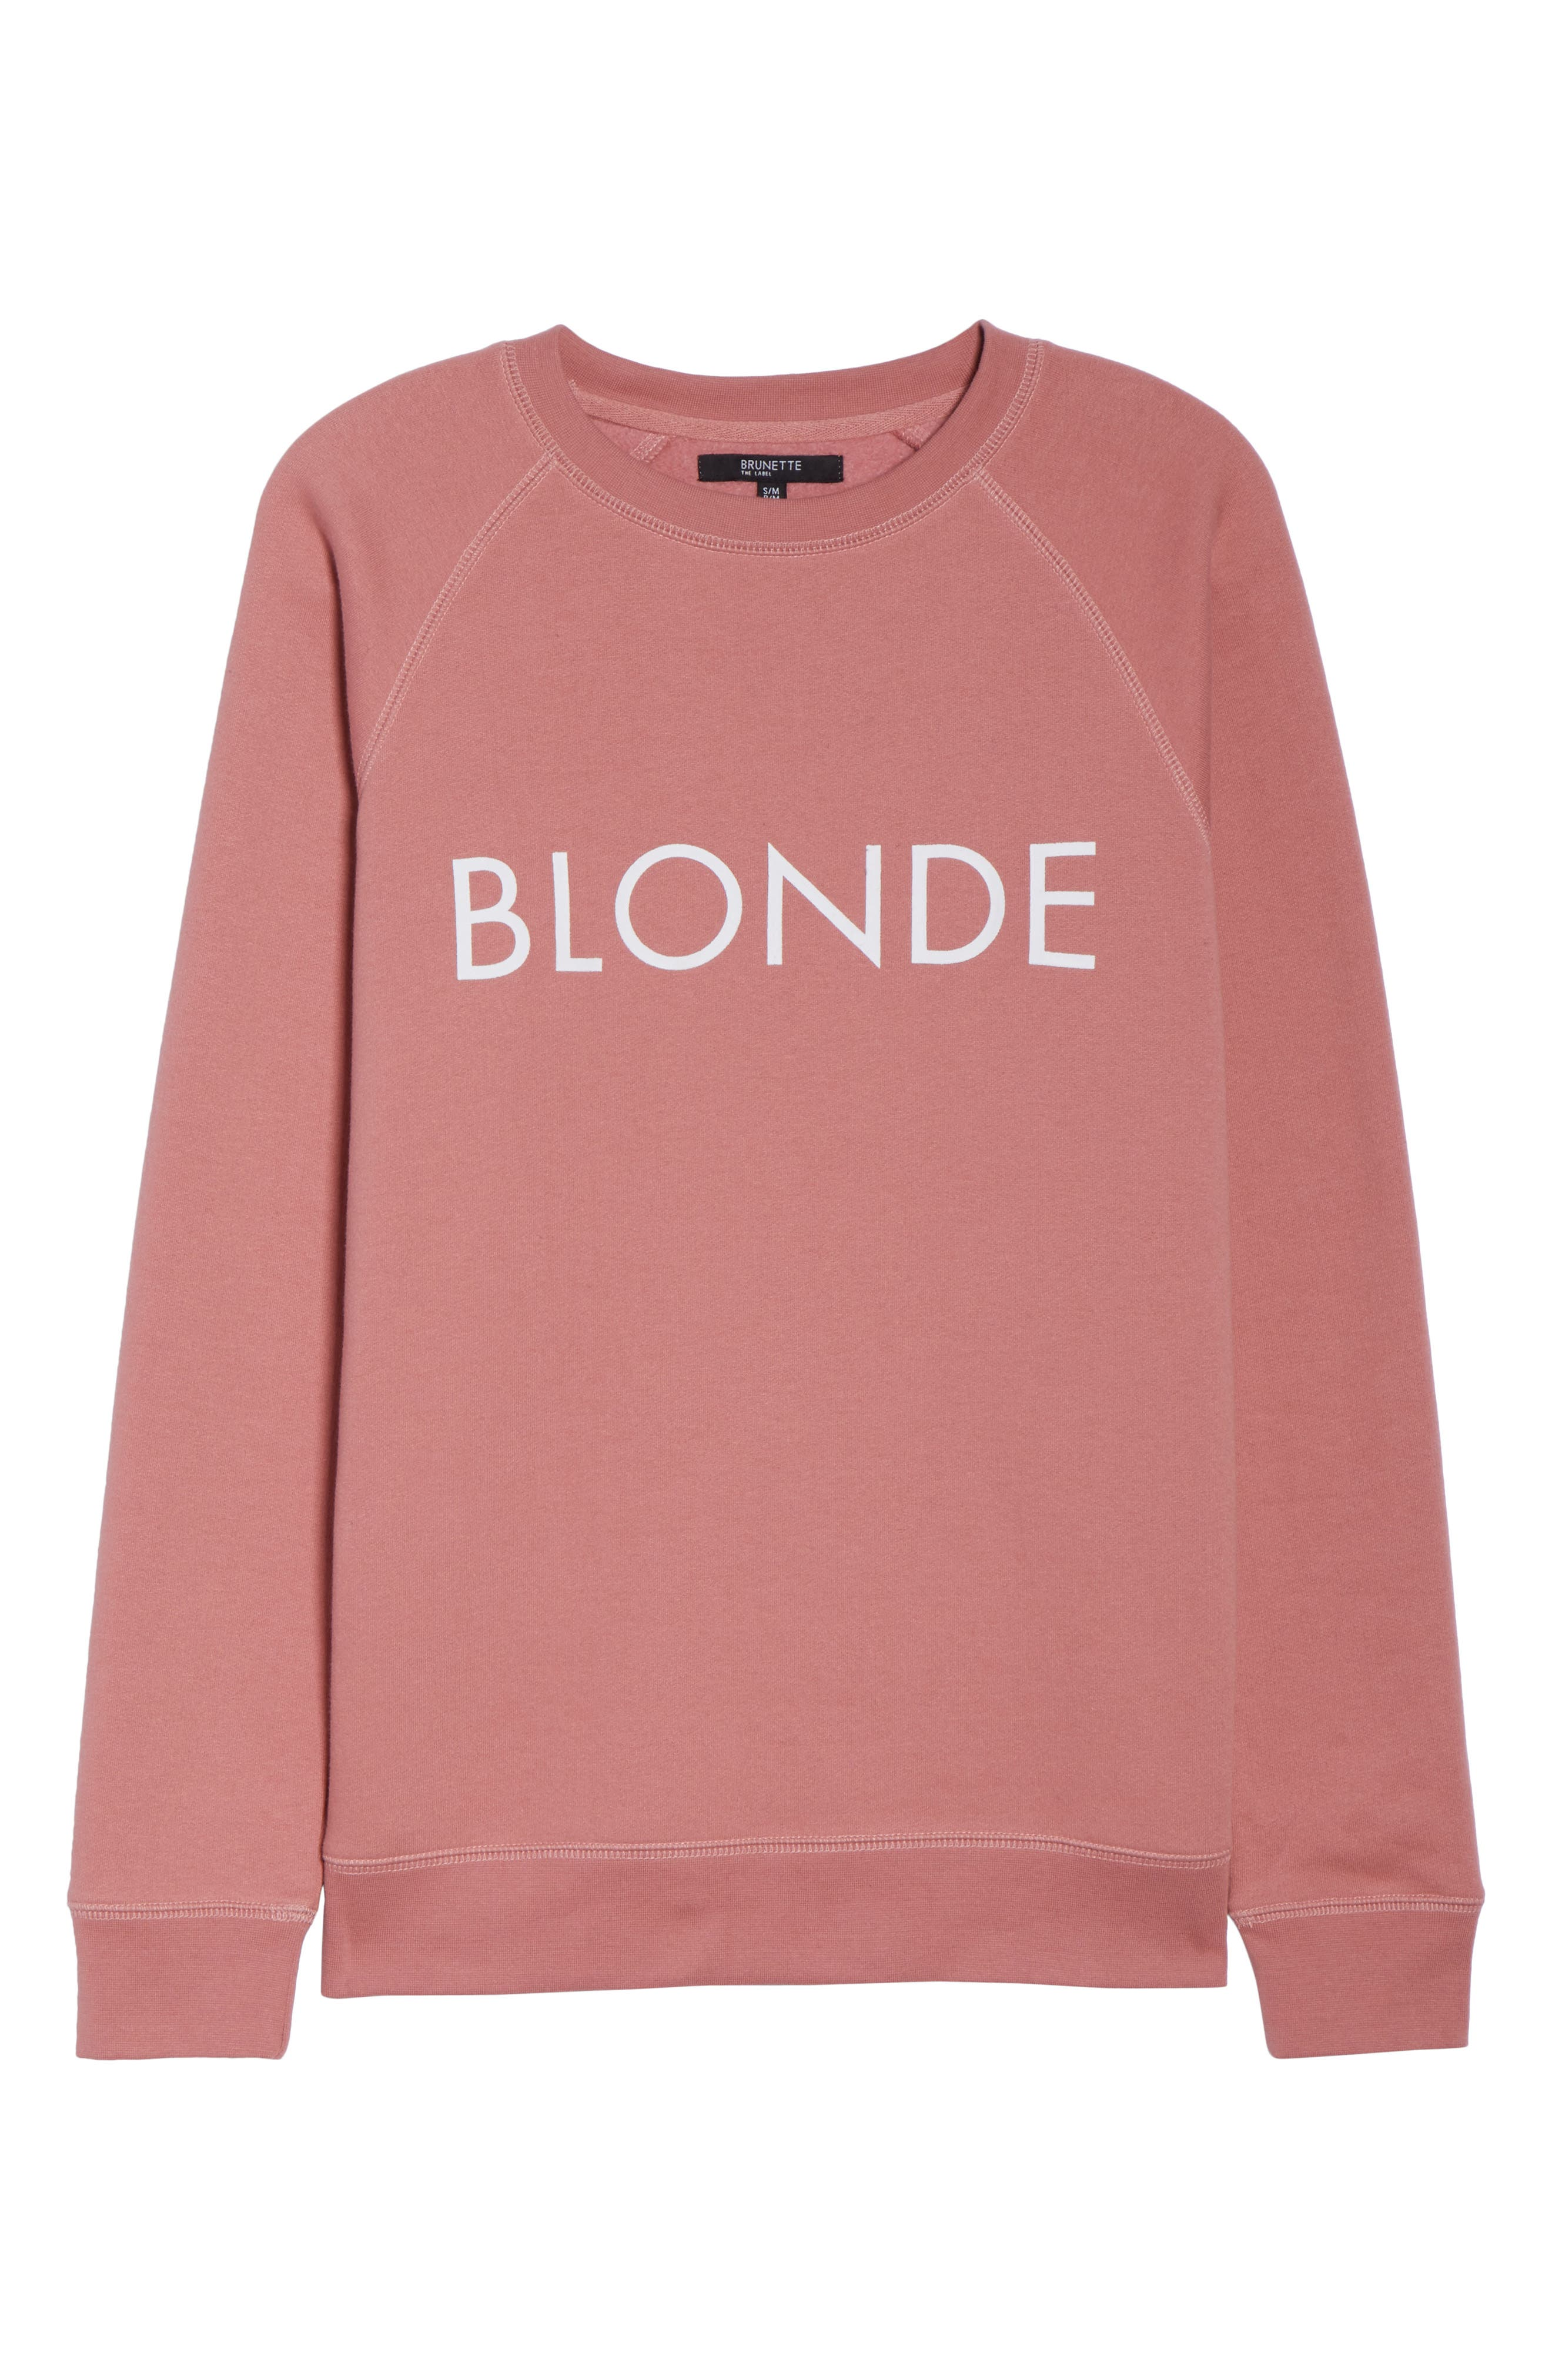 Blonde Crewneck Sweatshirt,                             Alternate thumbnail 4, color,                             Dusty Rose